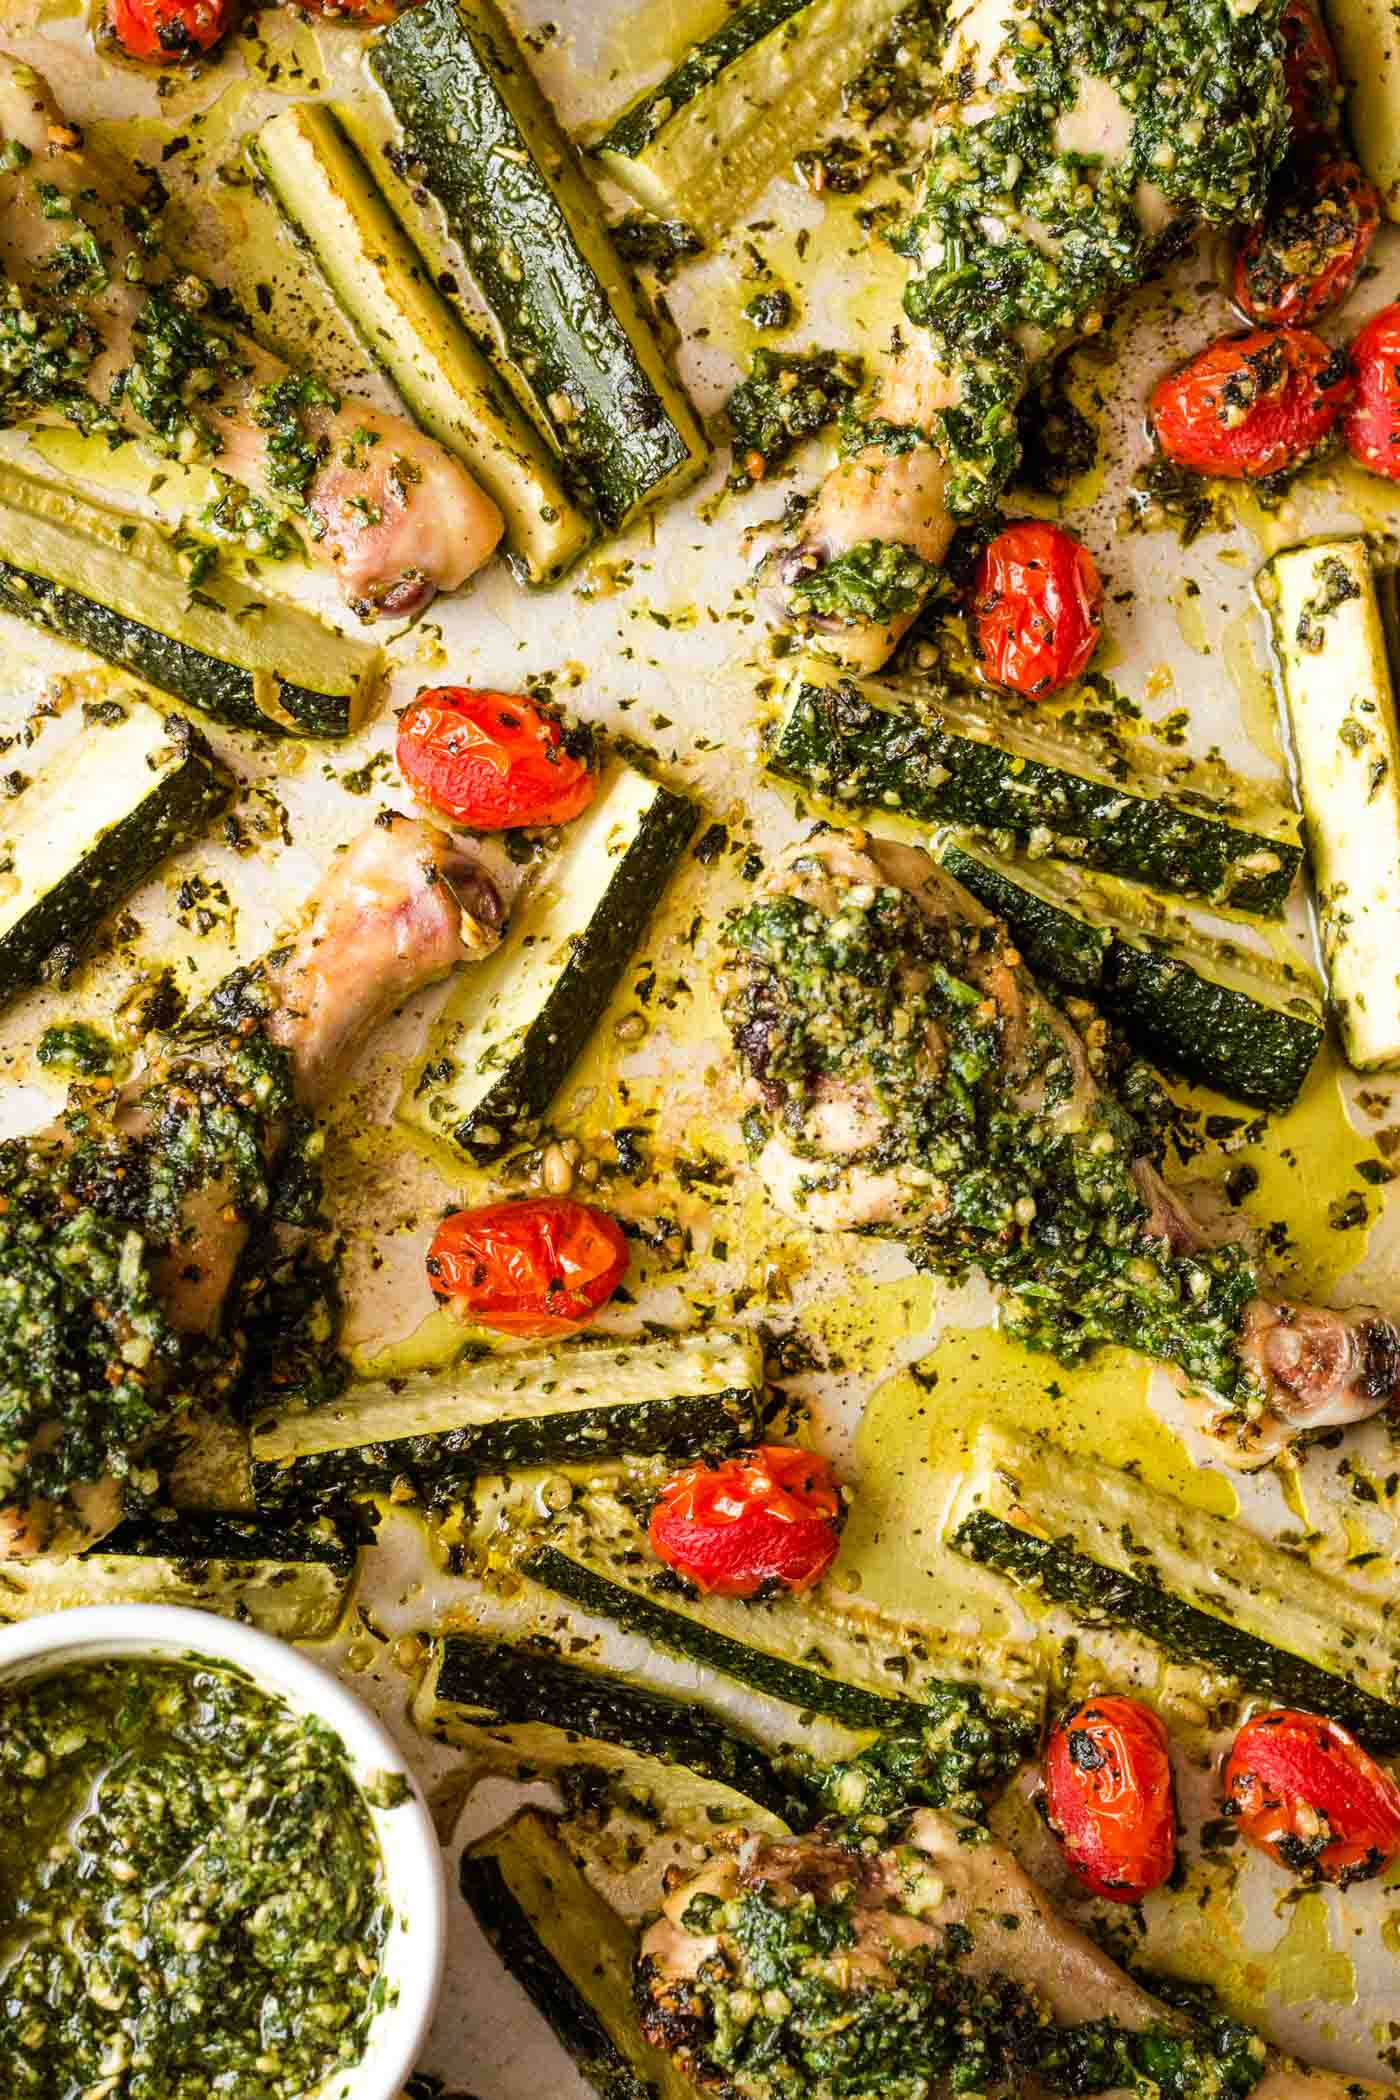 Chicken drumsticks, zucchini, and tomatoes covered in pesto on sheet pan